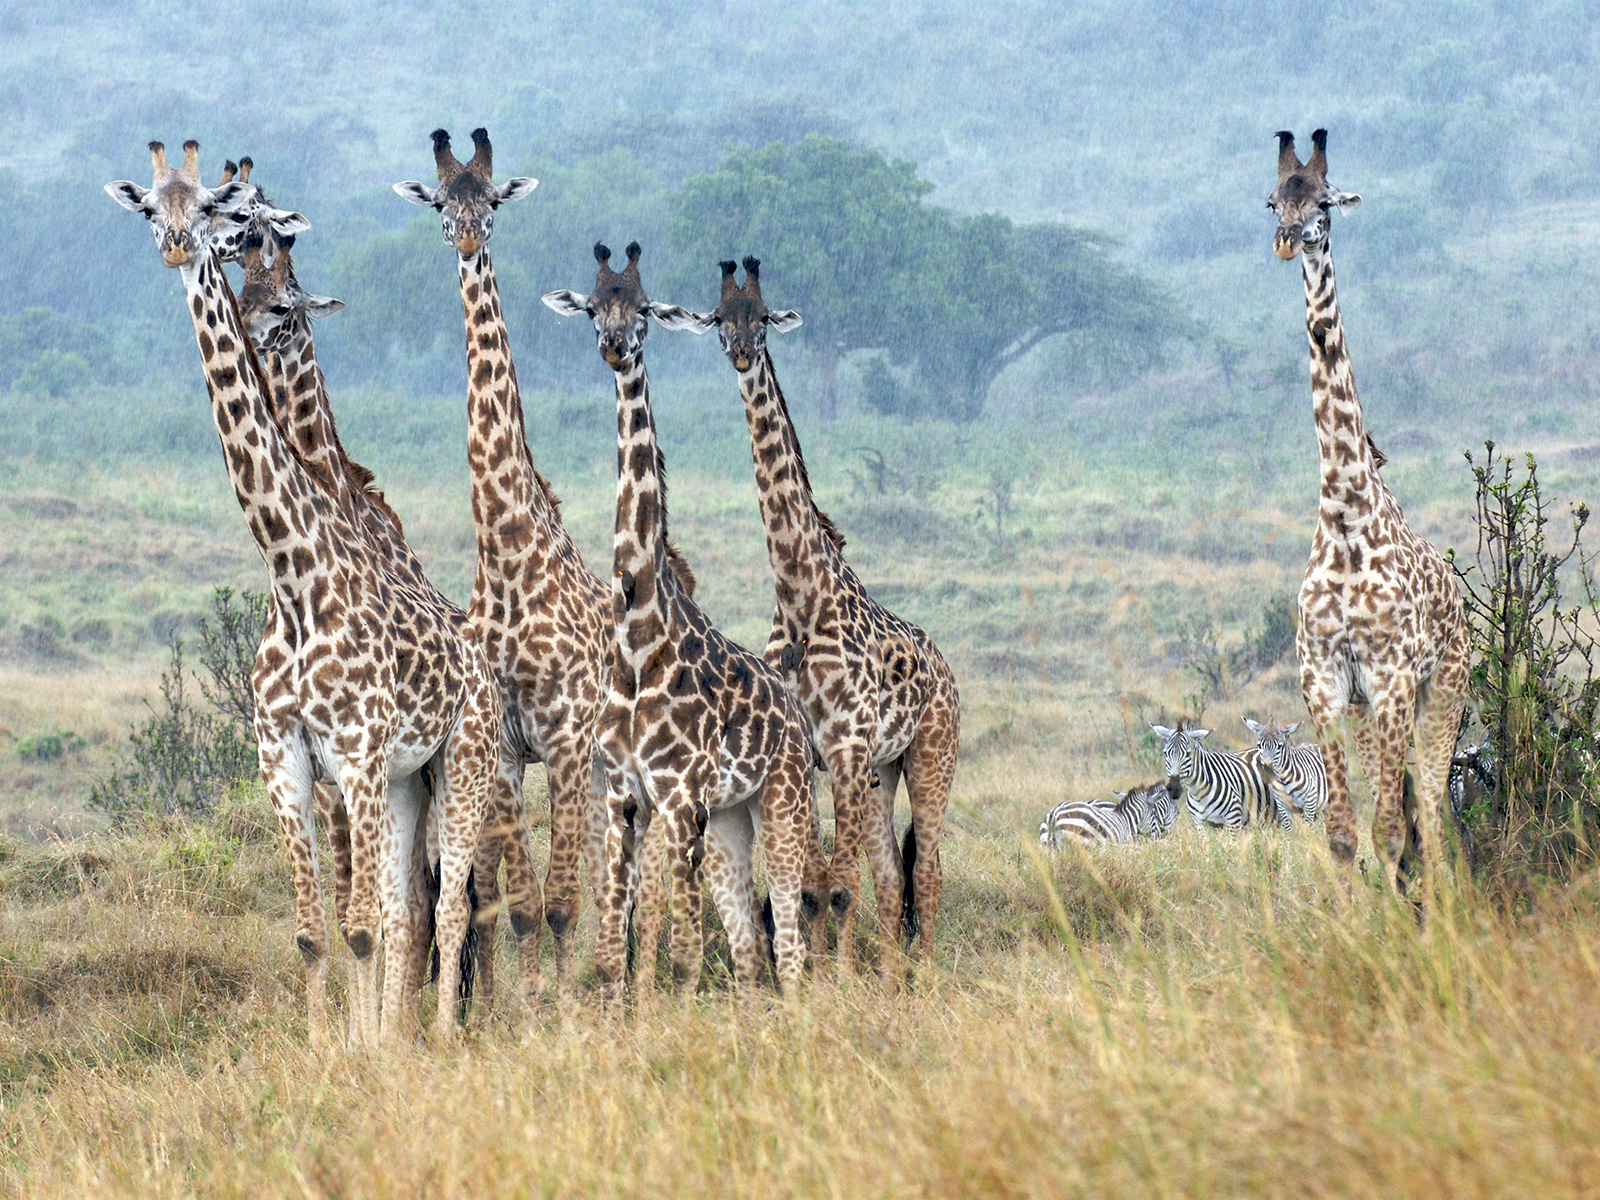 Giraffes standing really still in the rain in the Masai Mara, Kenya